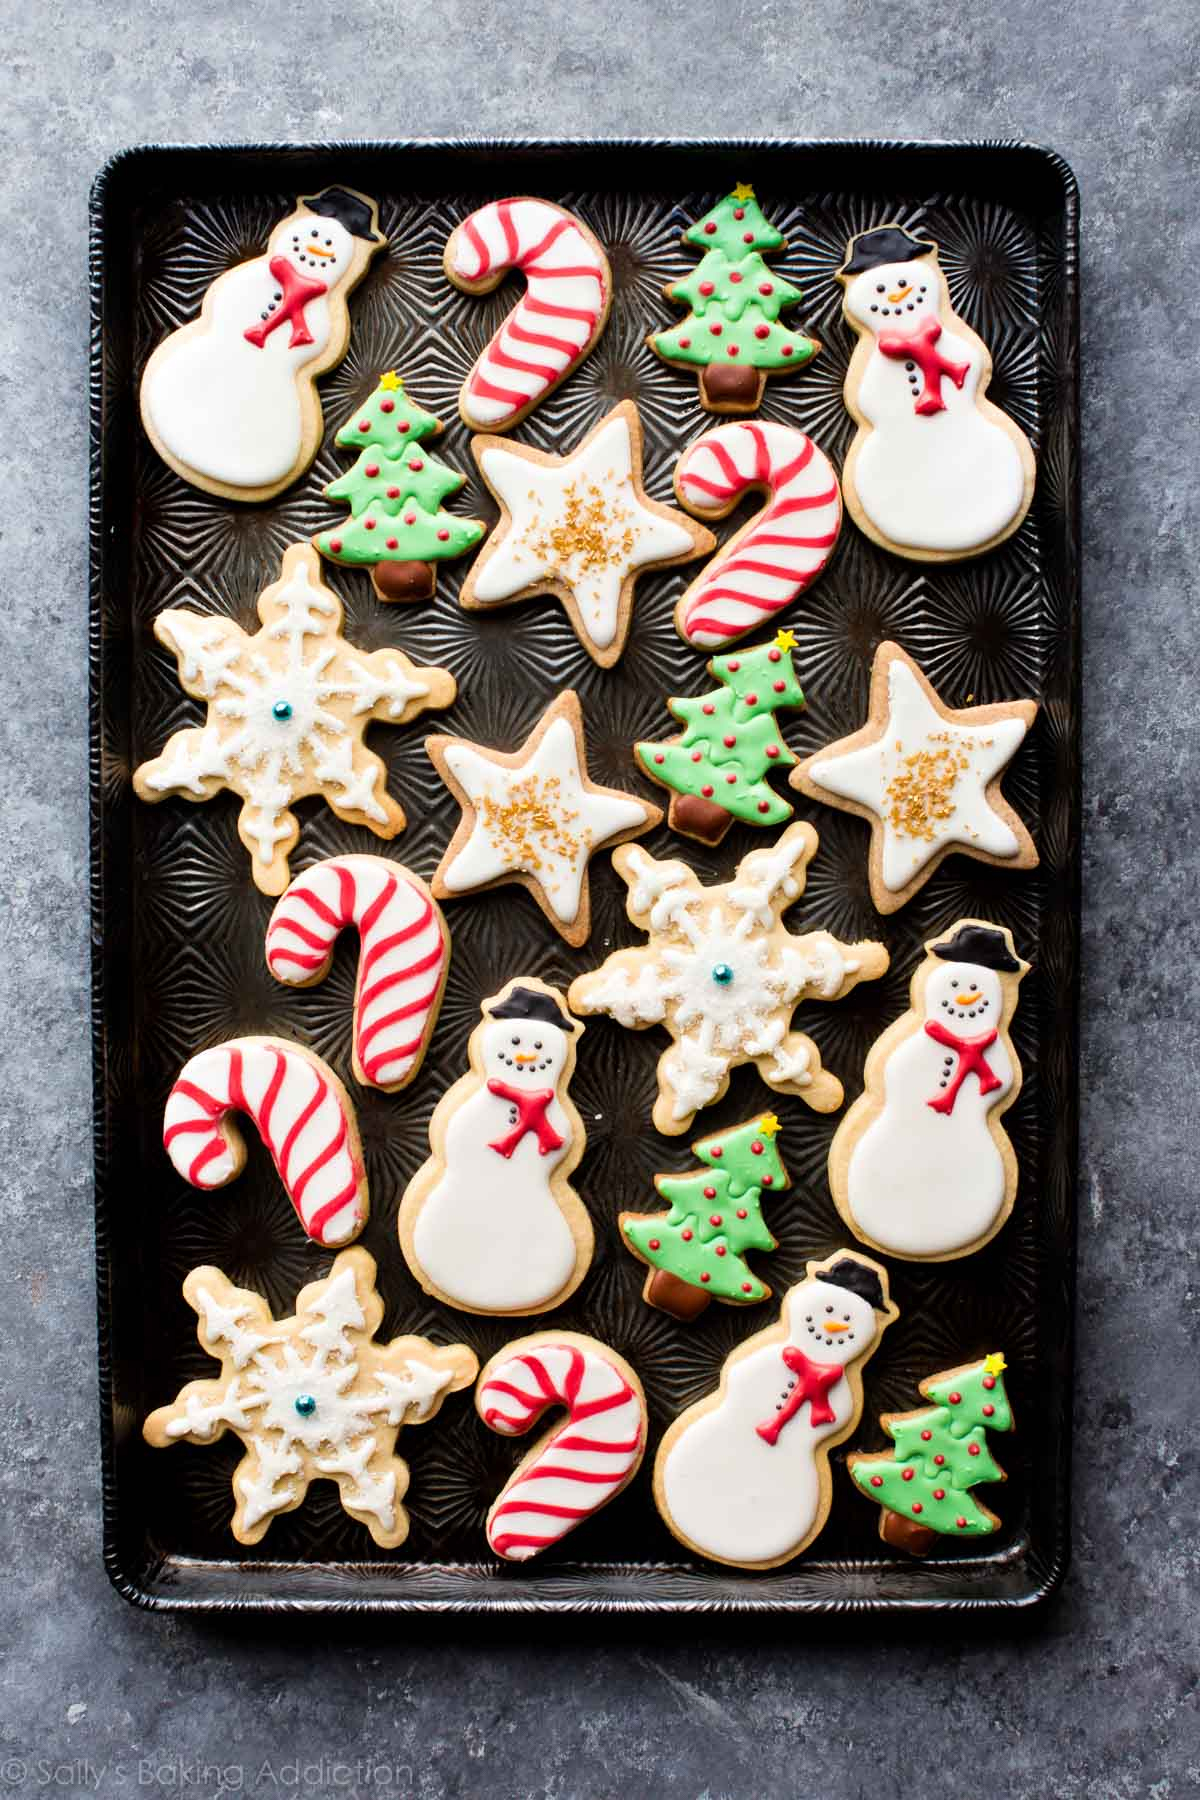 10 Amazing Easy Sugar Cookie Decorating Ideas how to decorate sugar cookies sallys baking addiction 2021